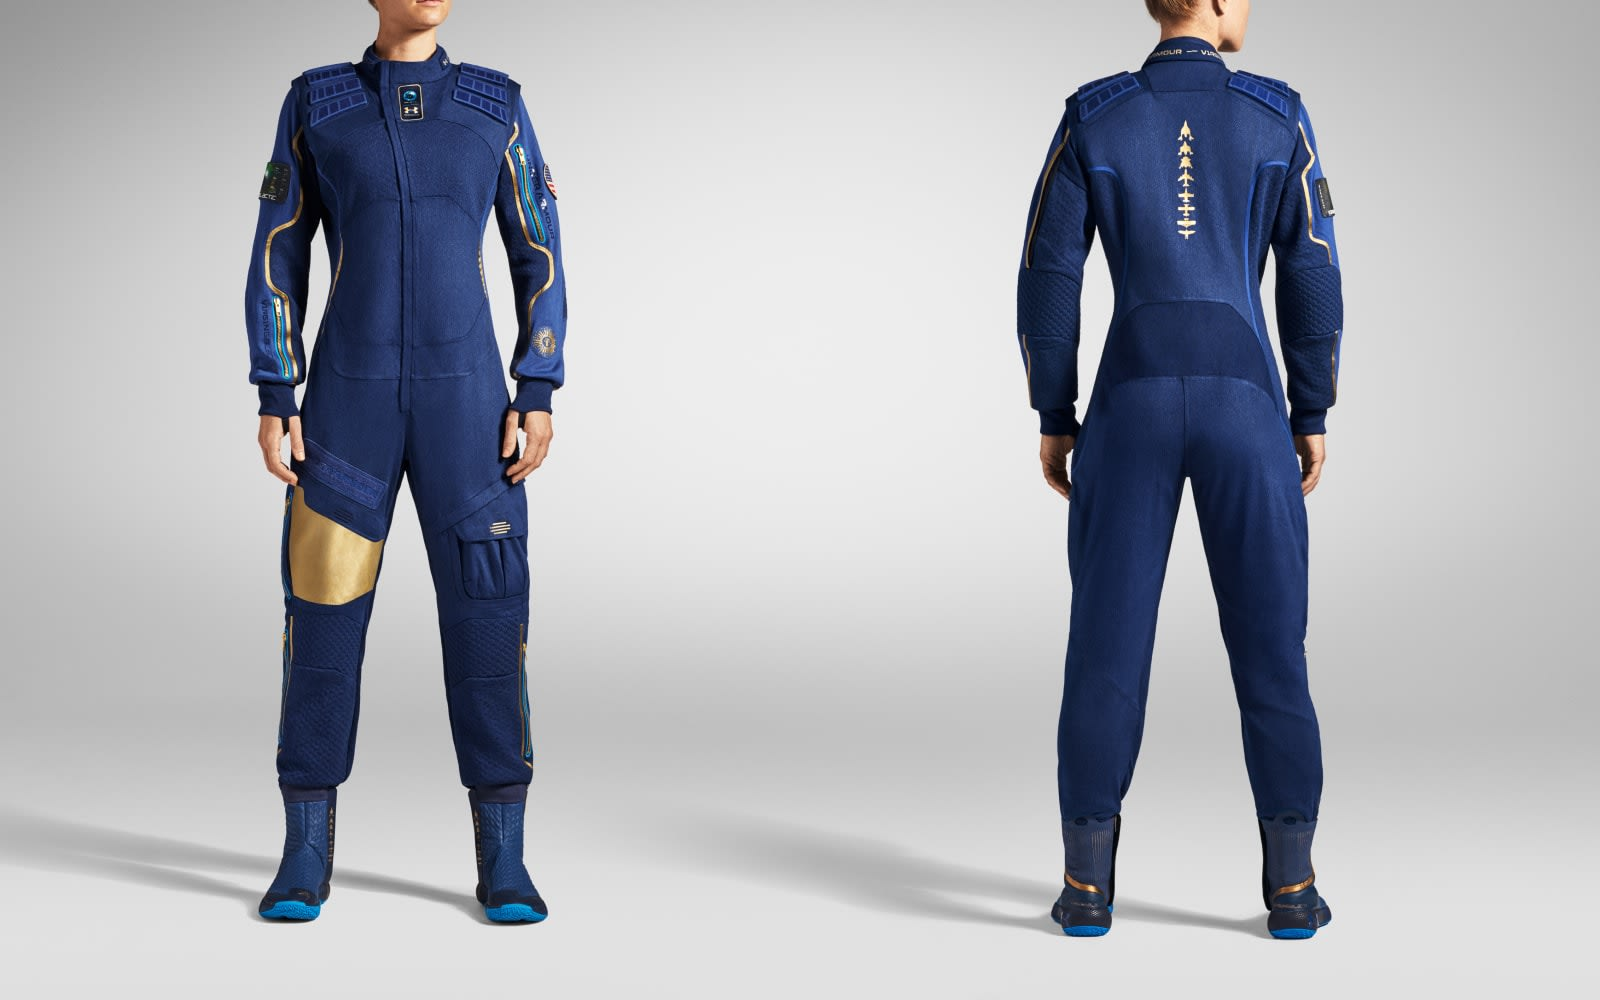 Virgin Galactic passengers will wear these Under Armour spacesuits